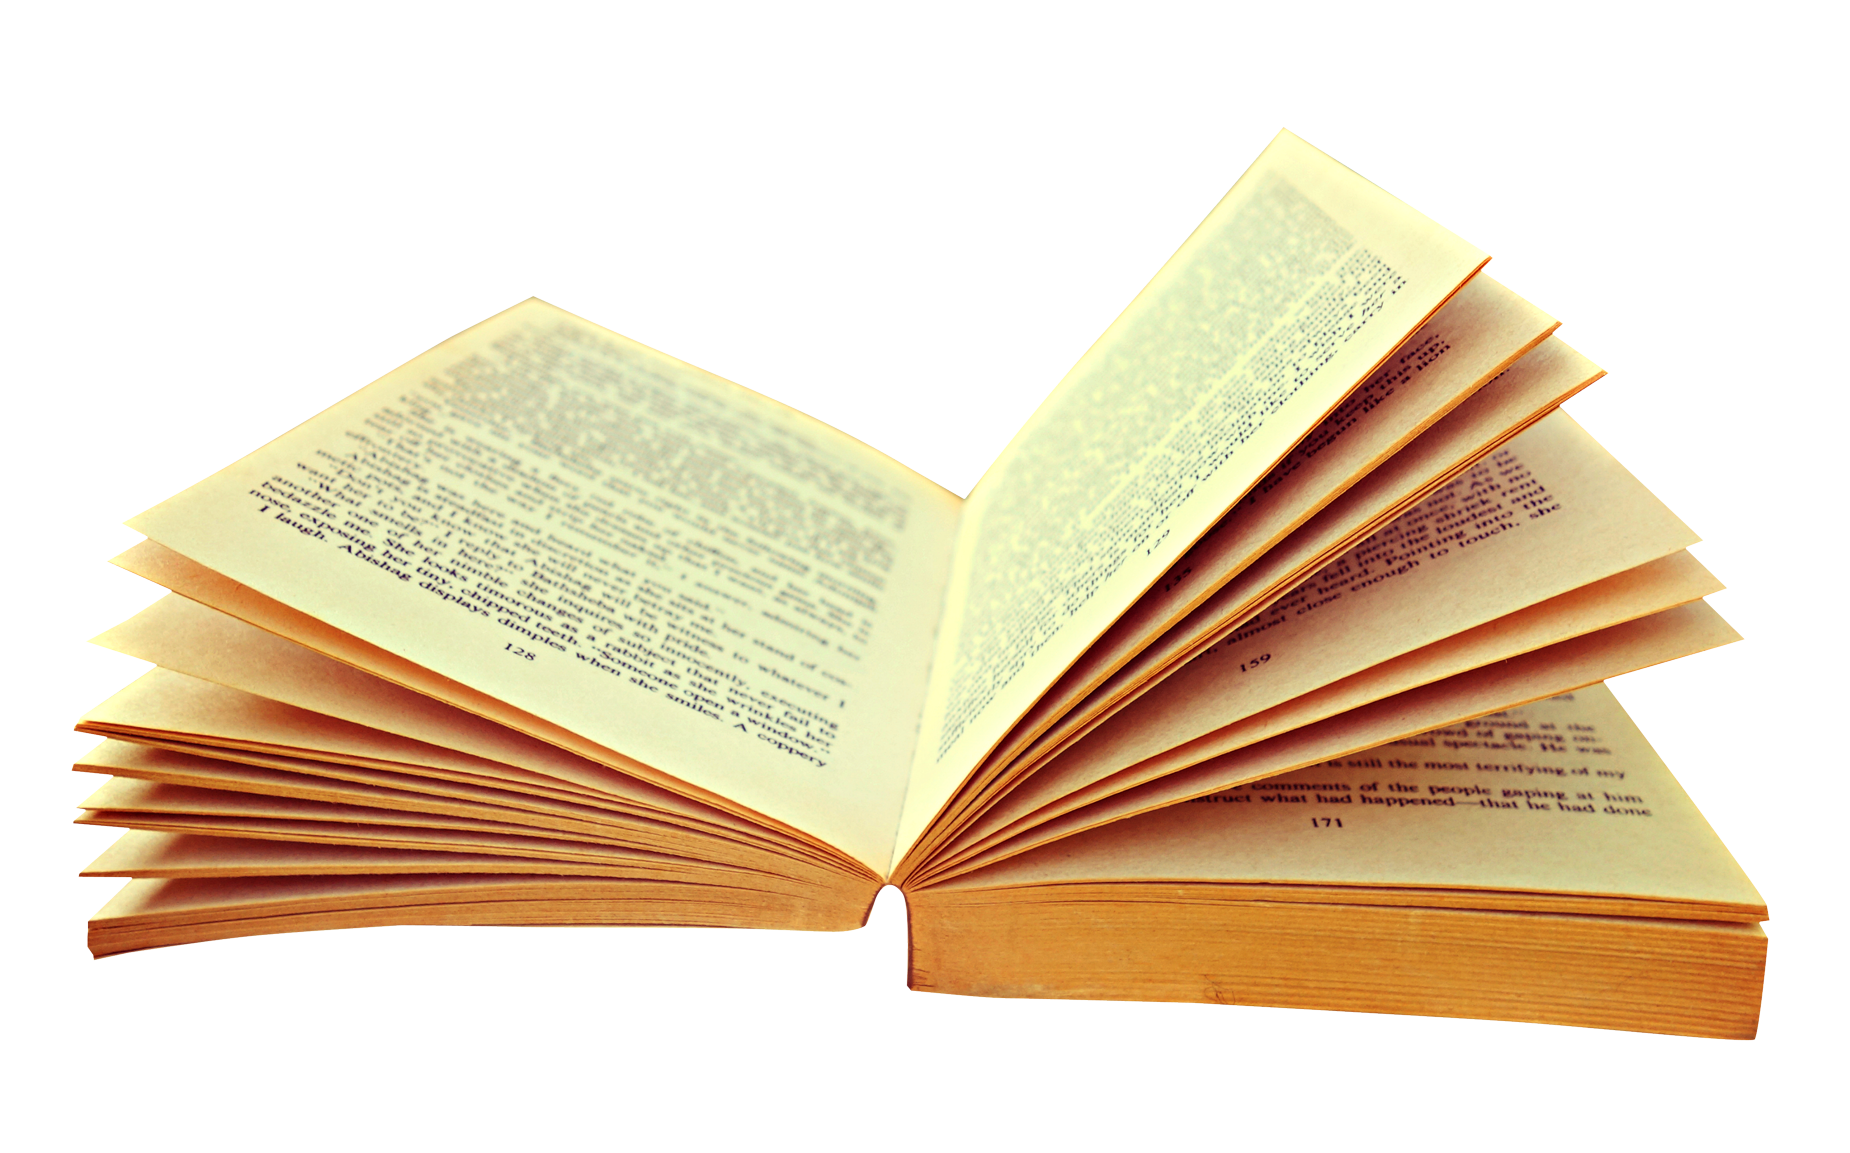 Opened Book PNG Image - PurePNG | Free transparent CC0 PNG Image Library clip library download